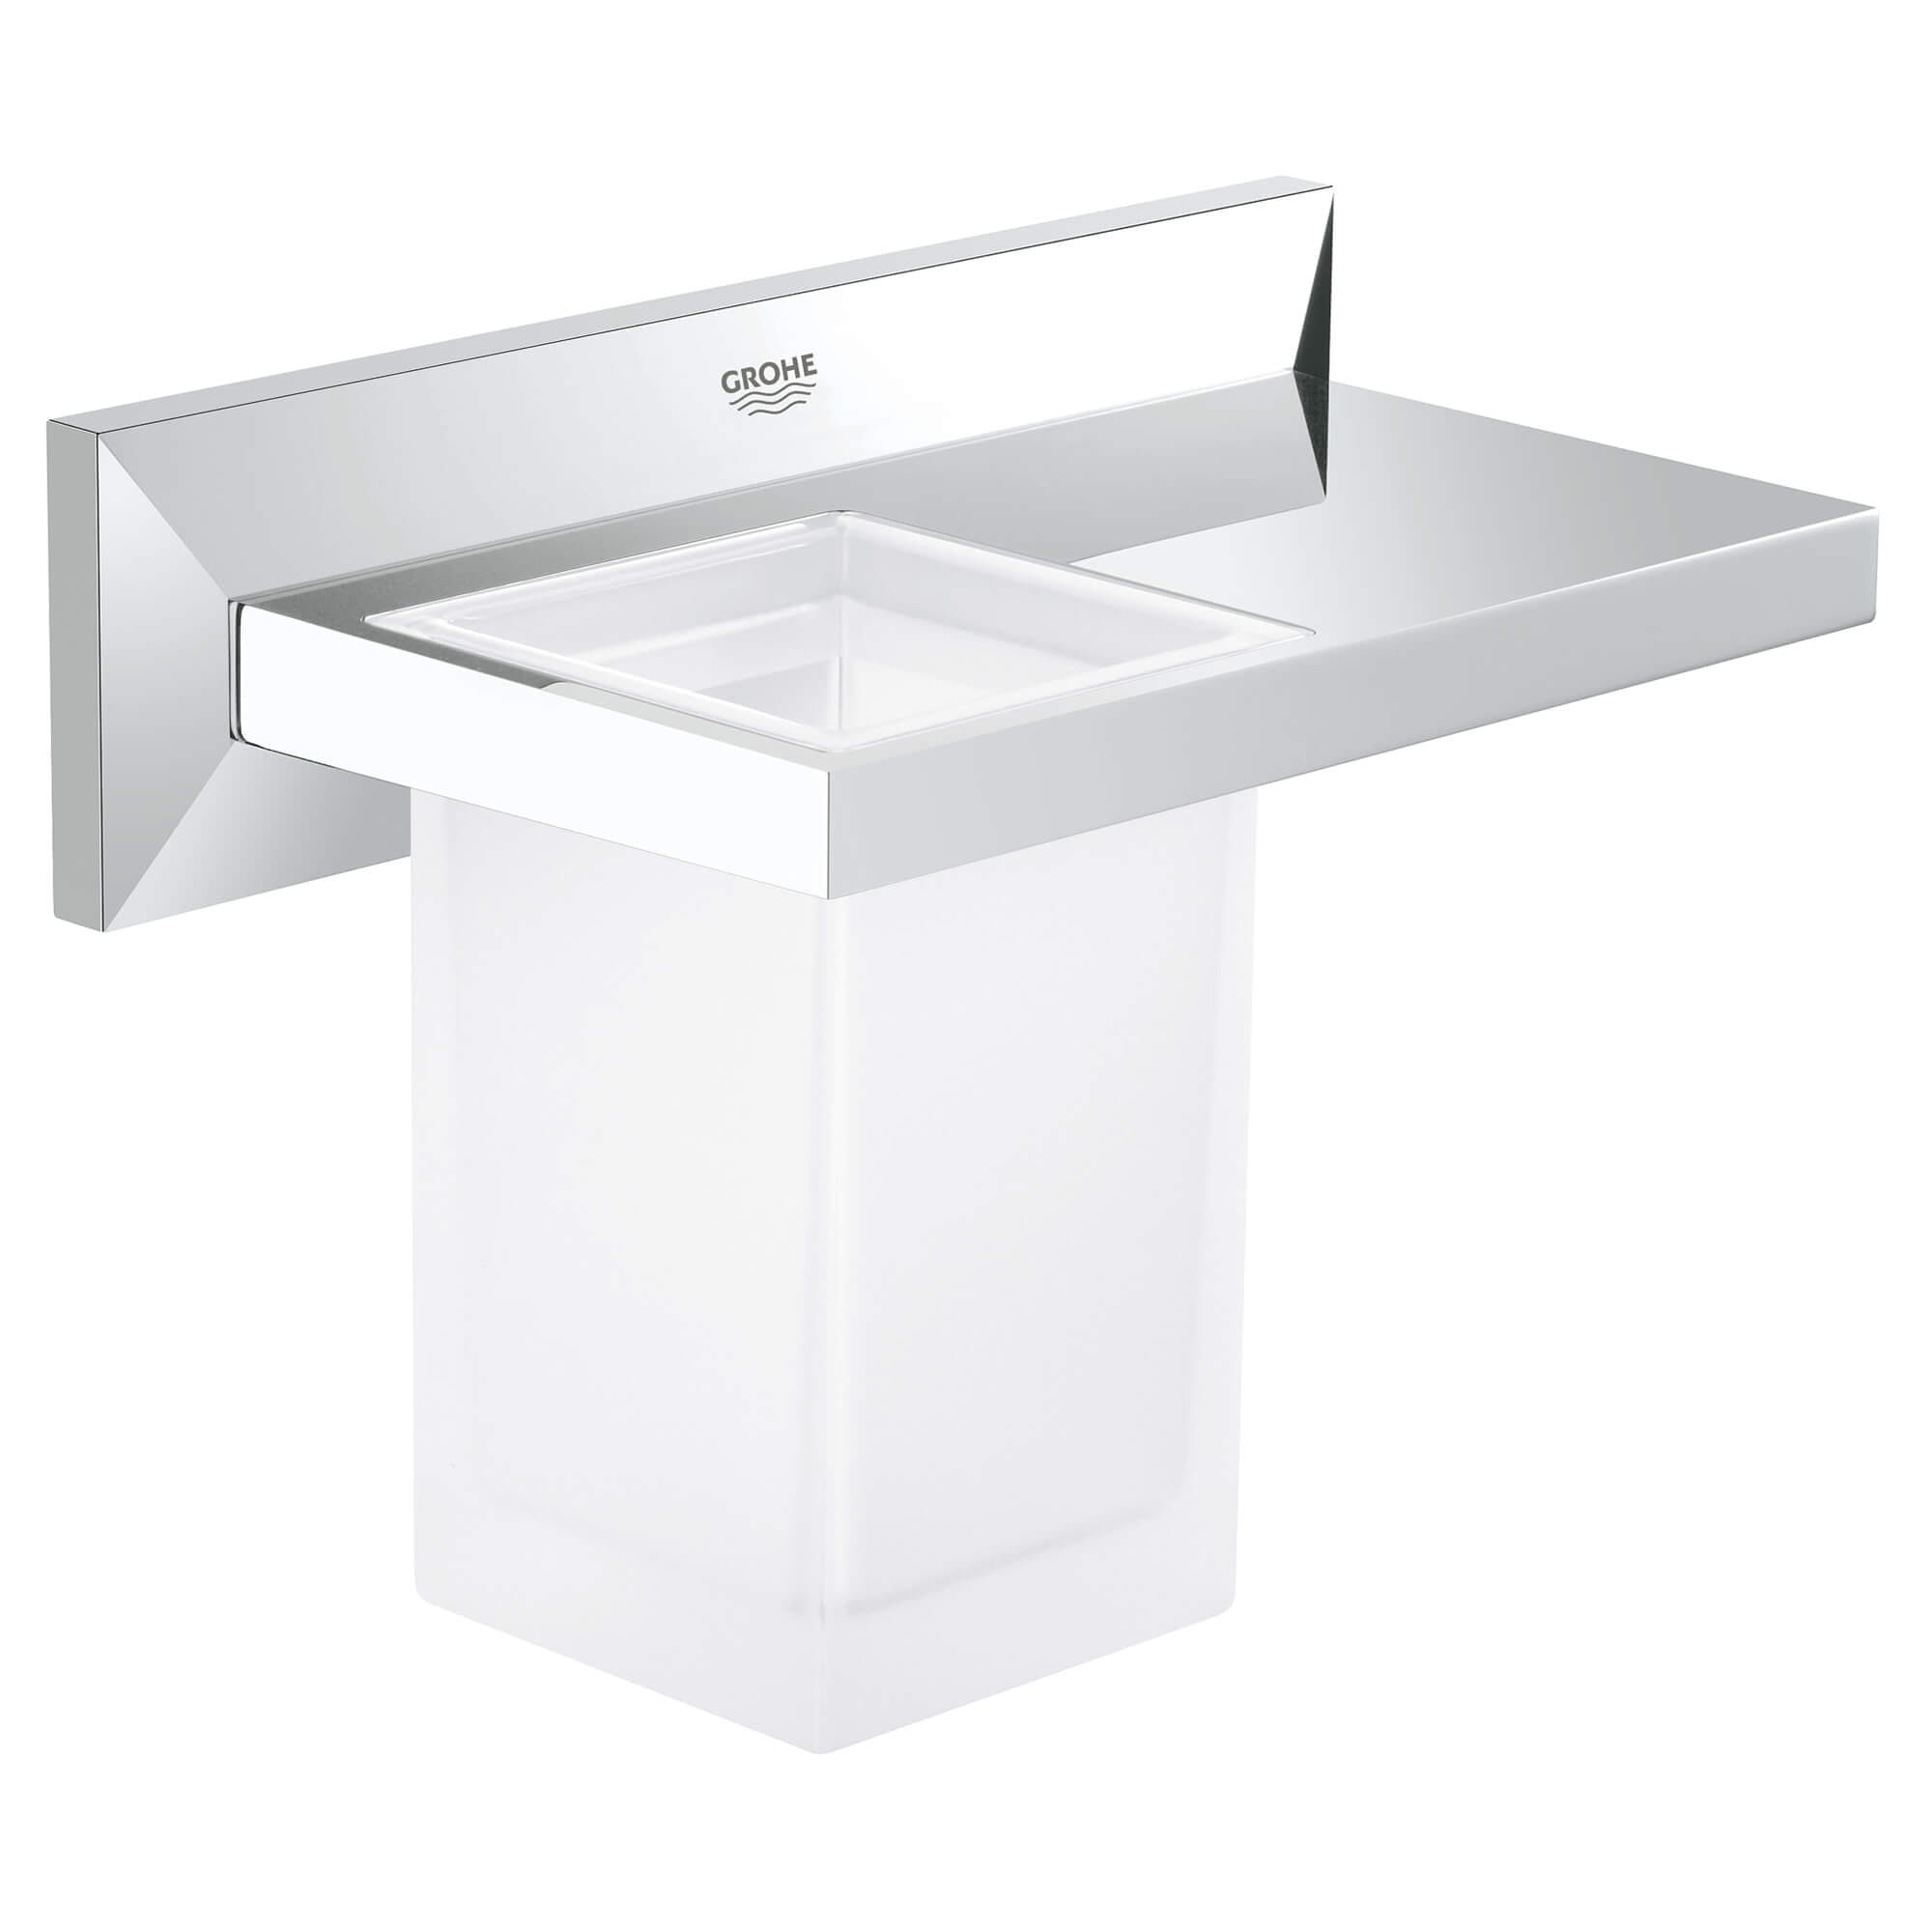 Bathroom Shelf with Tumbler GROHE CHROME